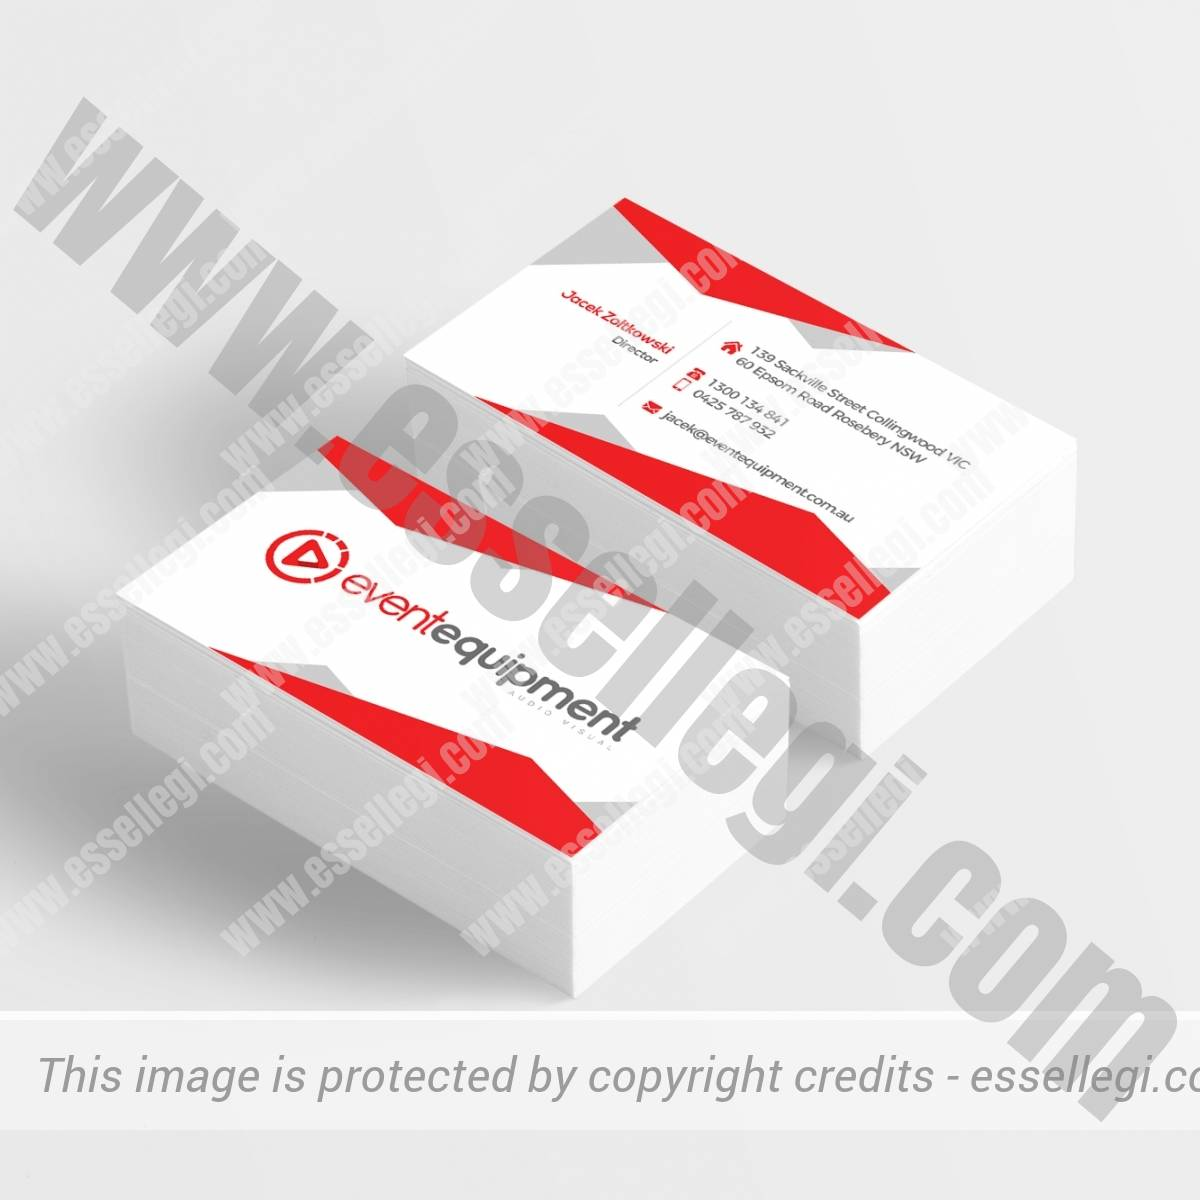 EVENTEQUIPMENT | BUSINESS CARD DESIGN 🇦🇺